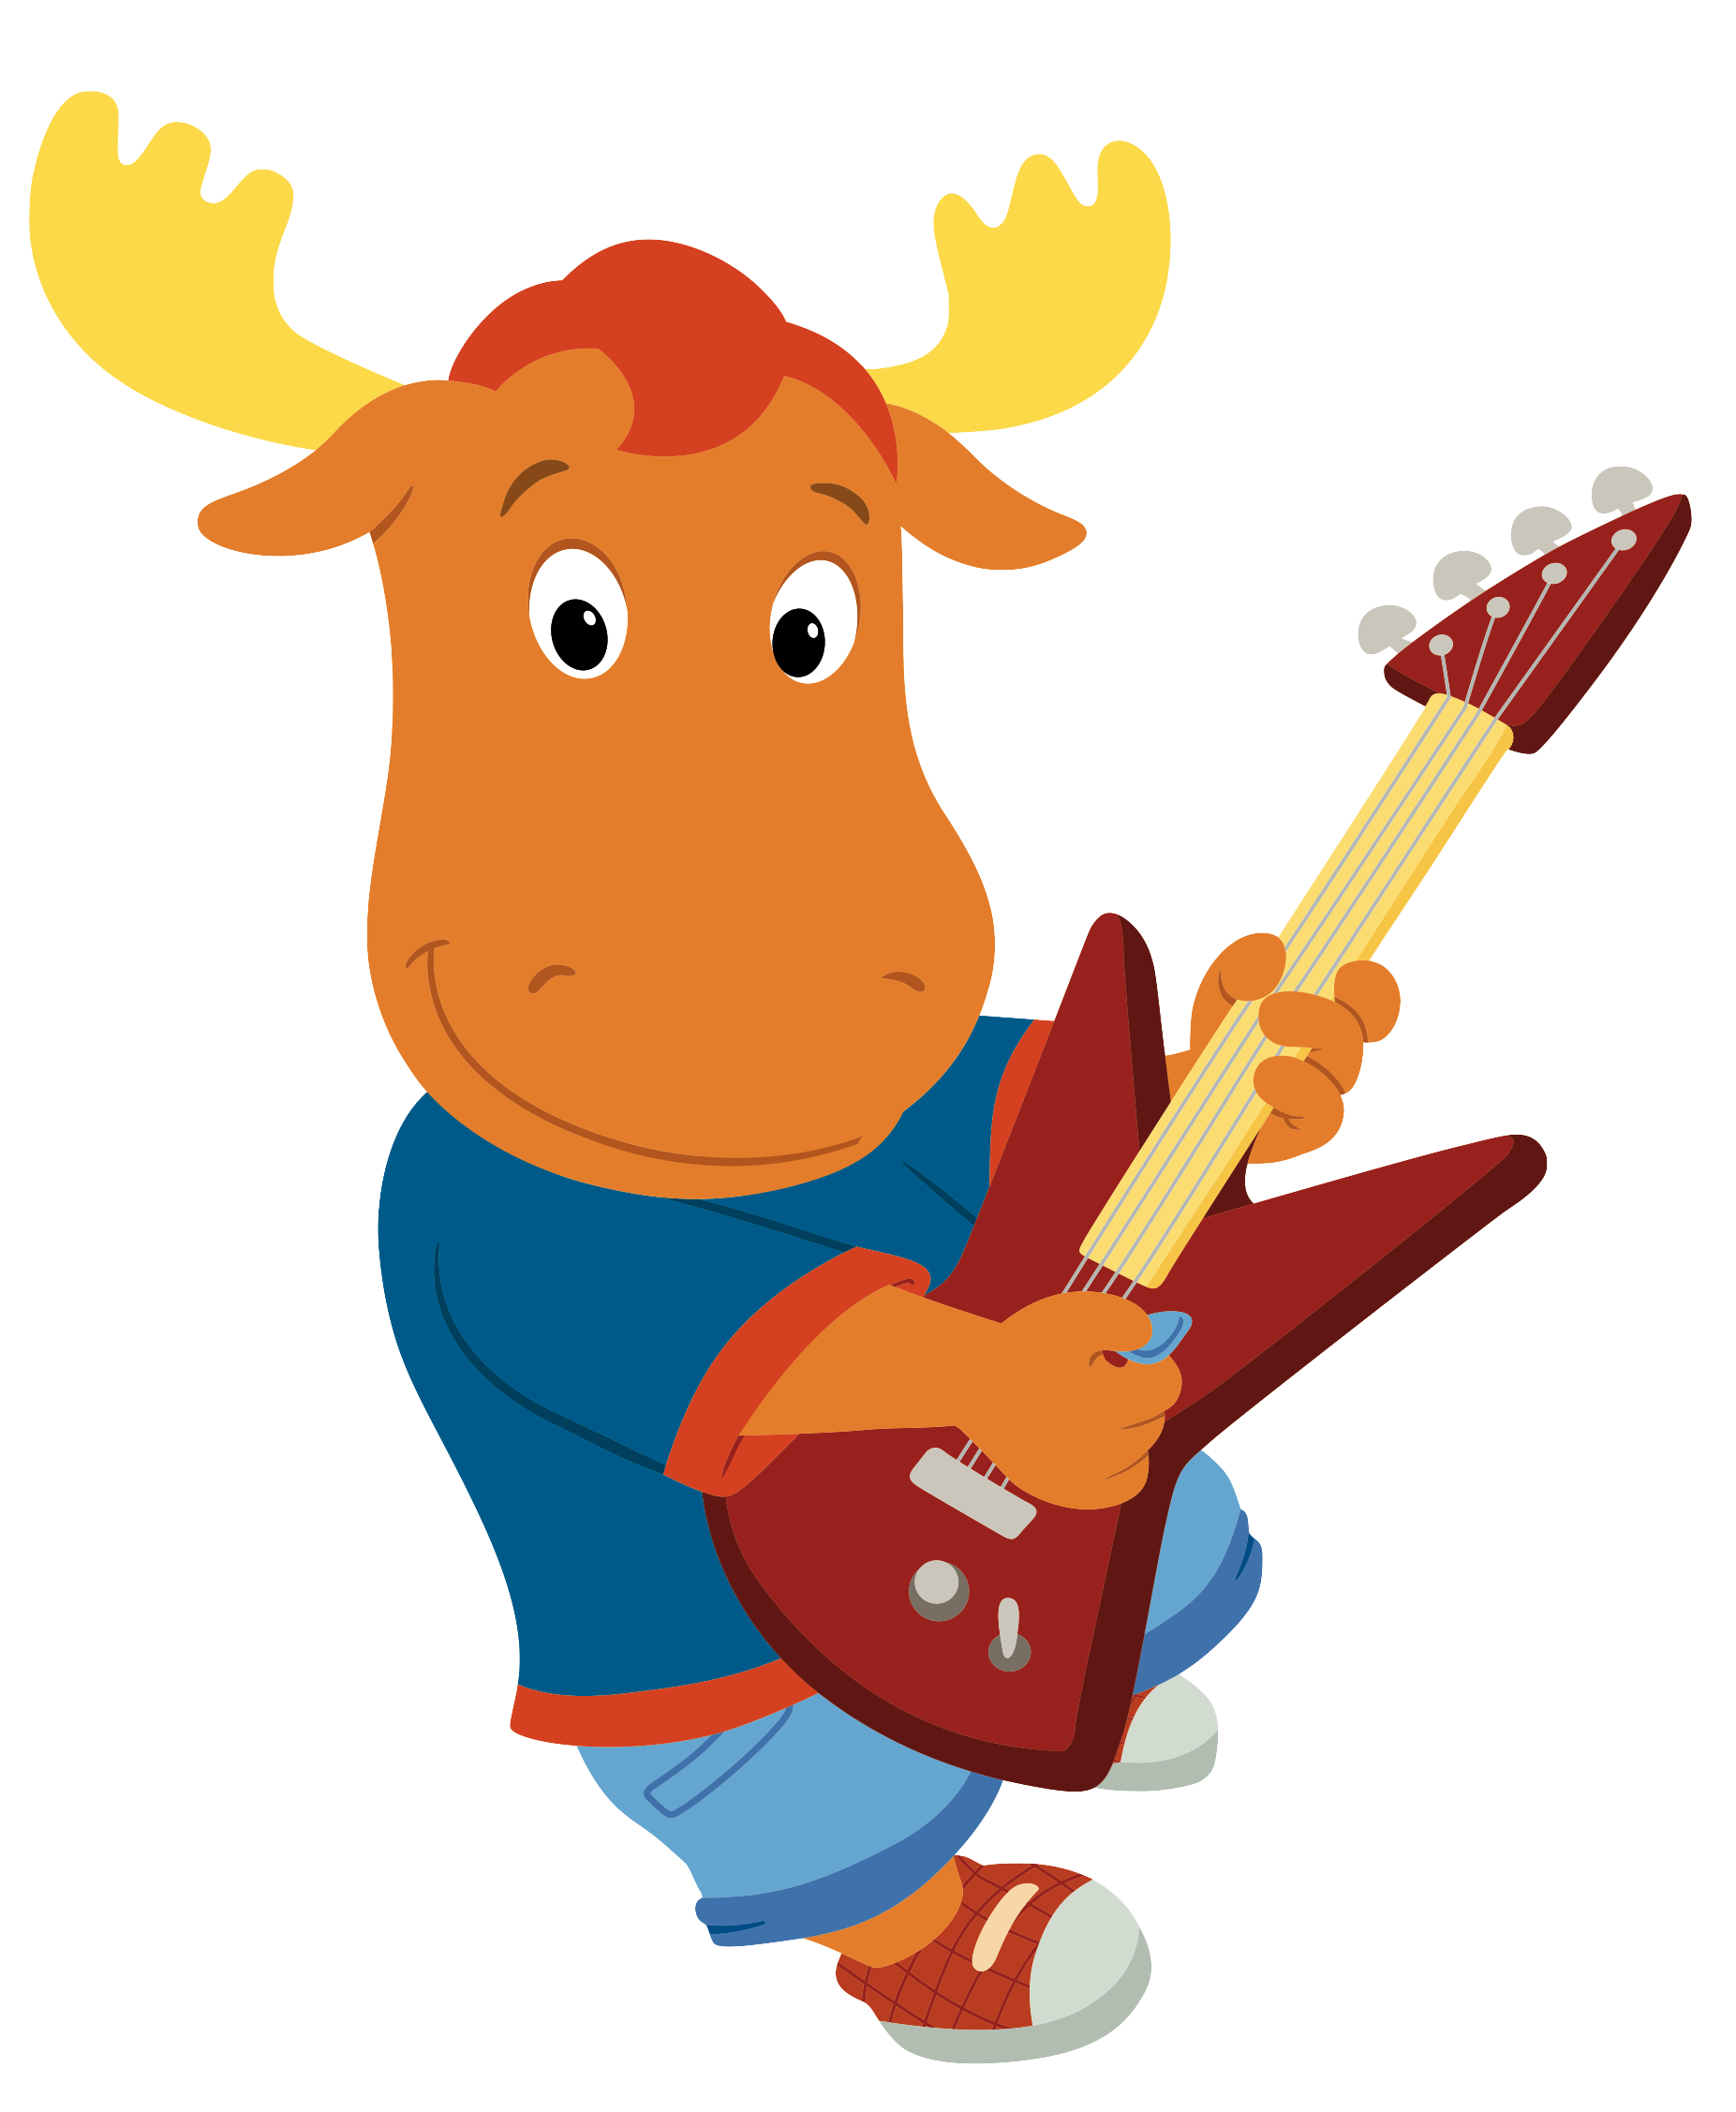 Image the backyardigans let. Play clipart let's play